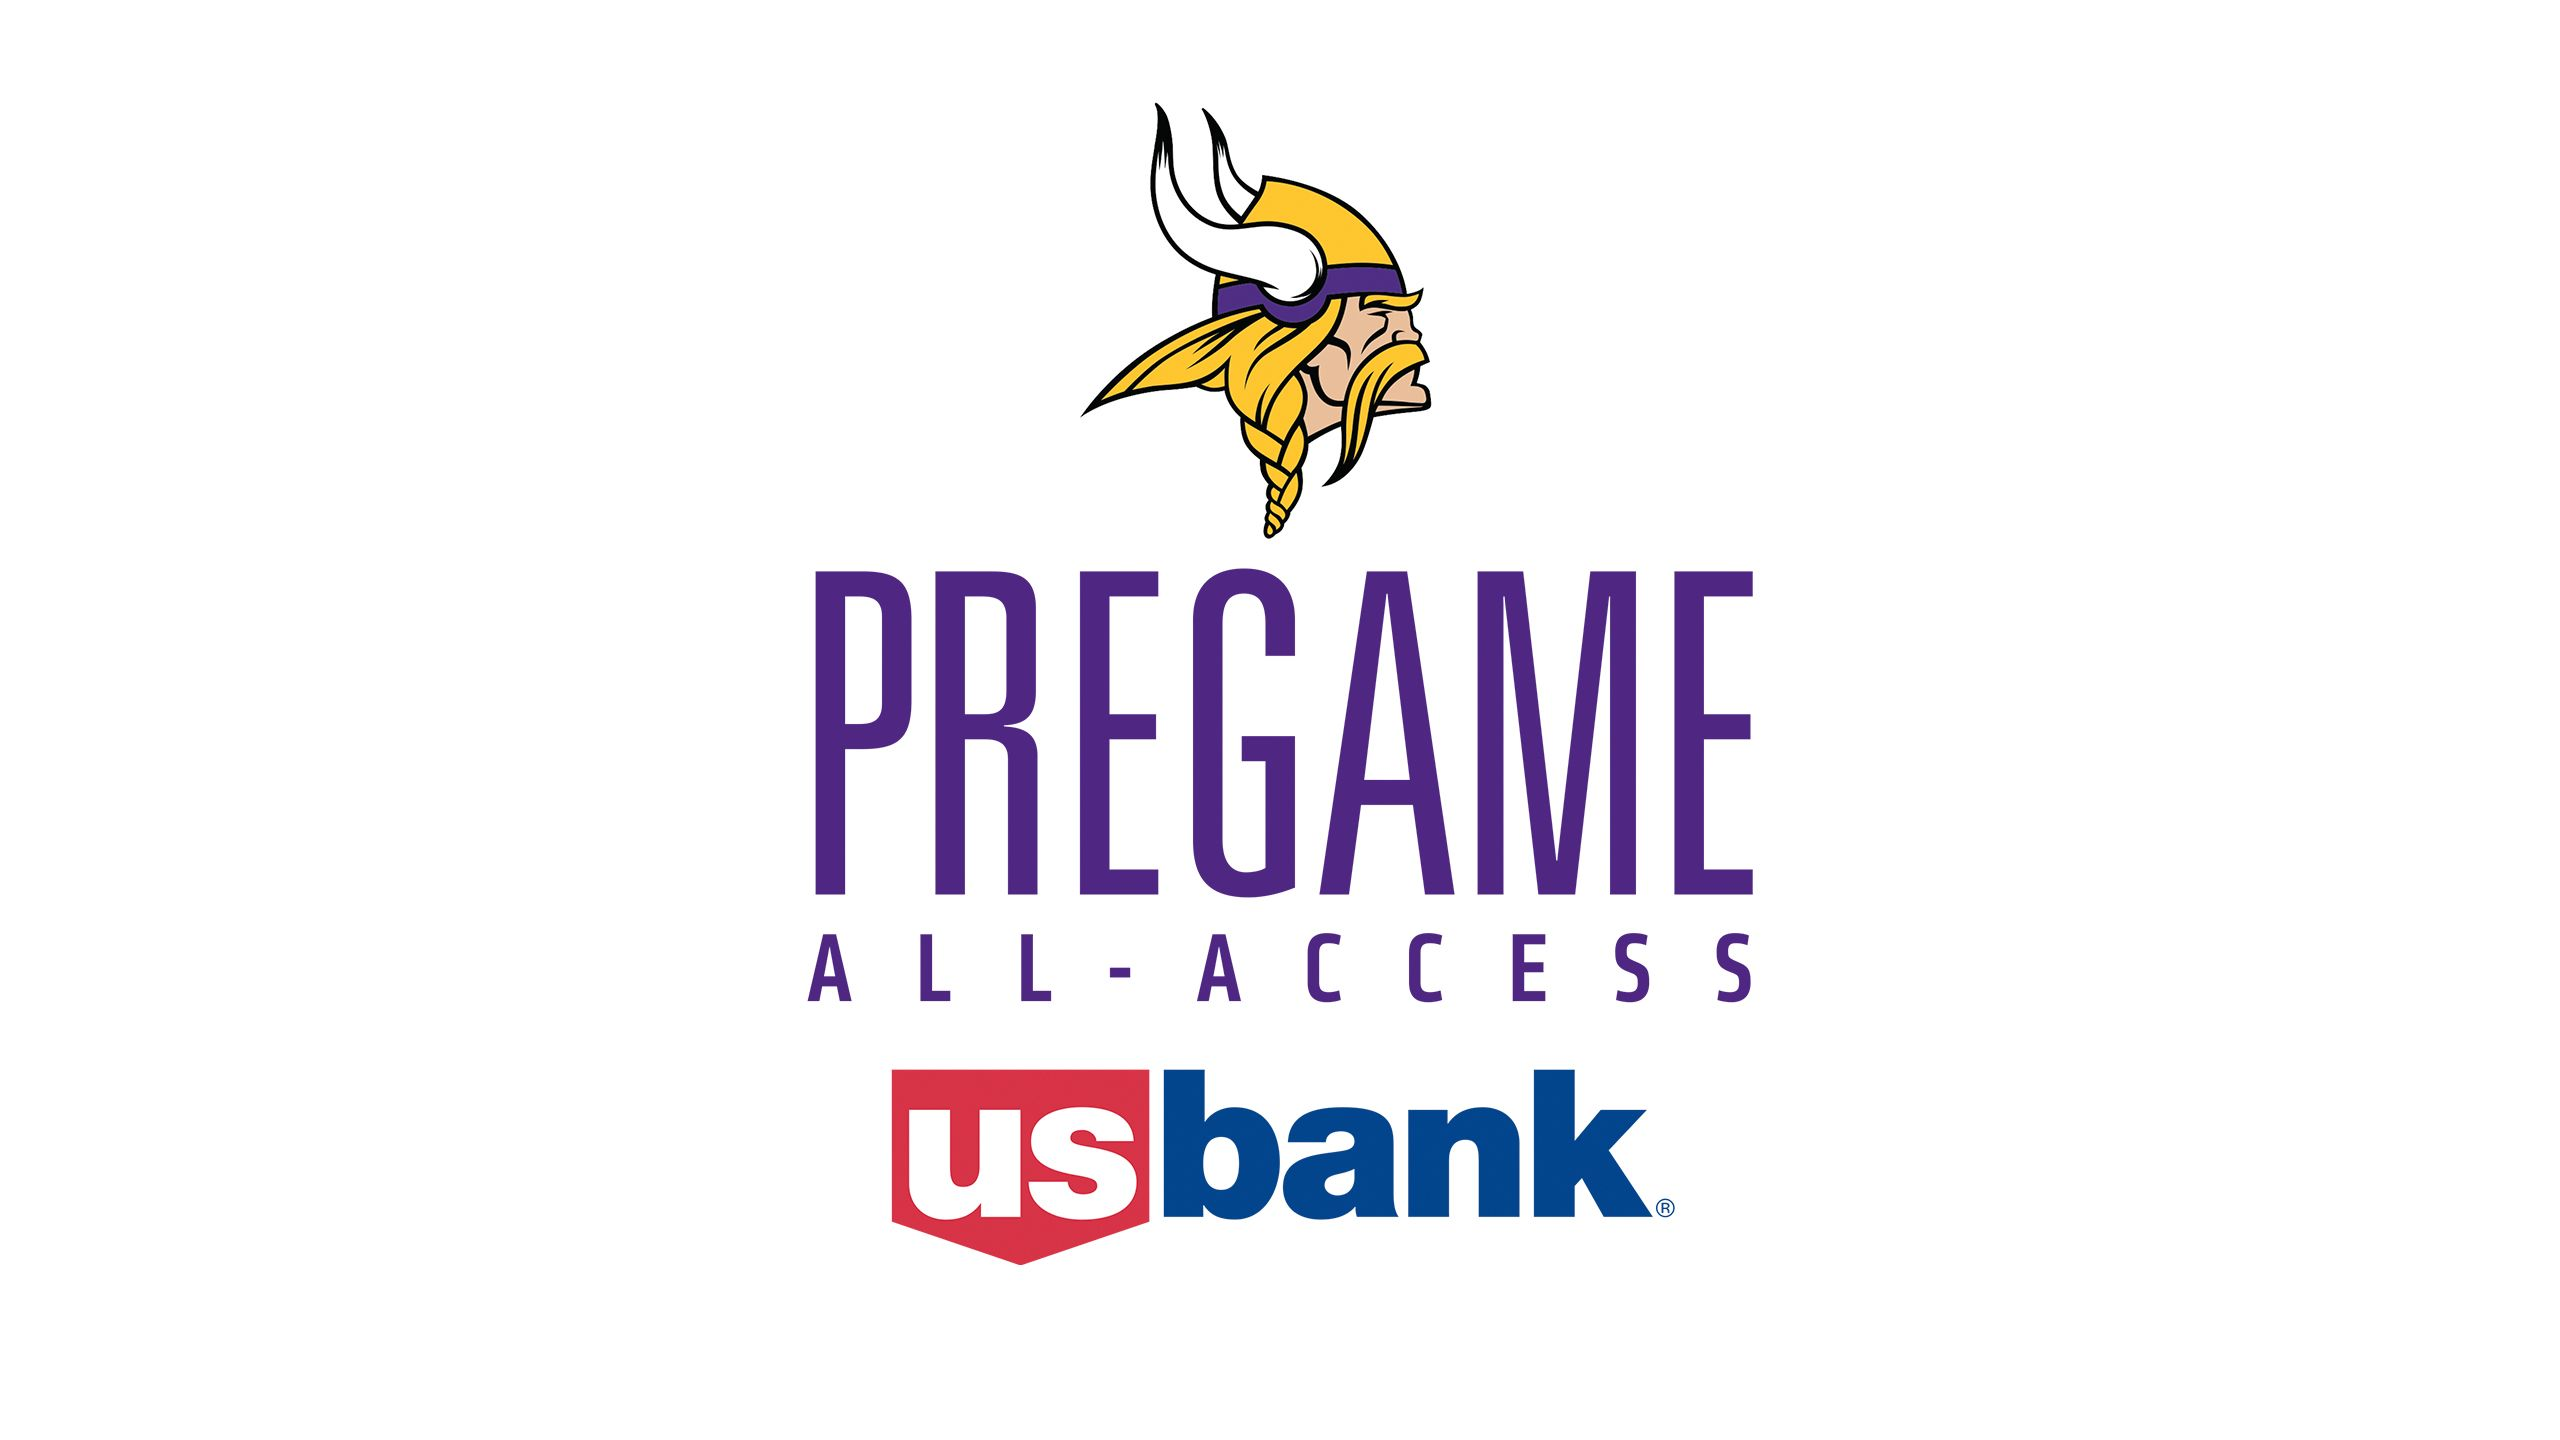 Vikings Pregame All-Access Presented by U.S. Bank